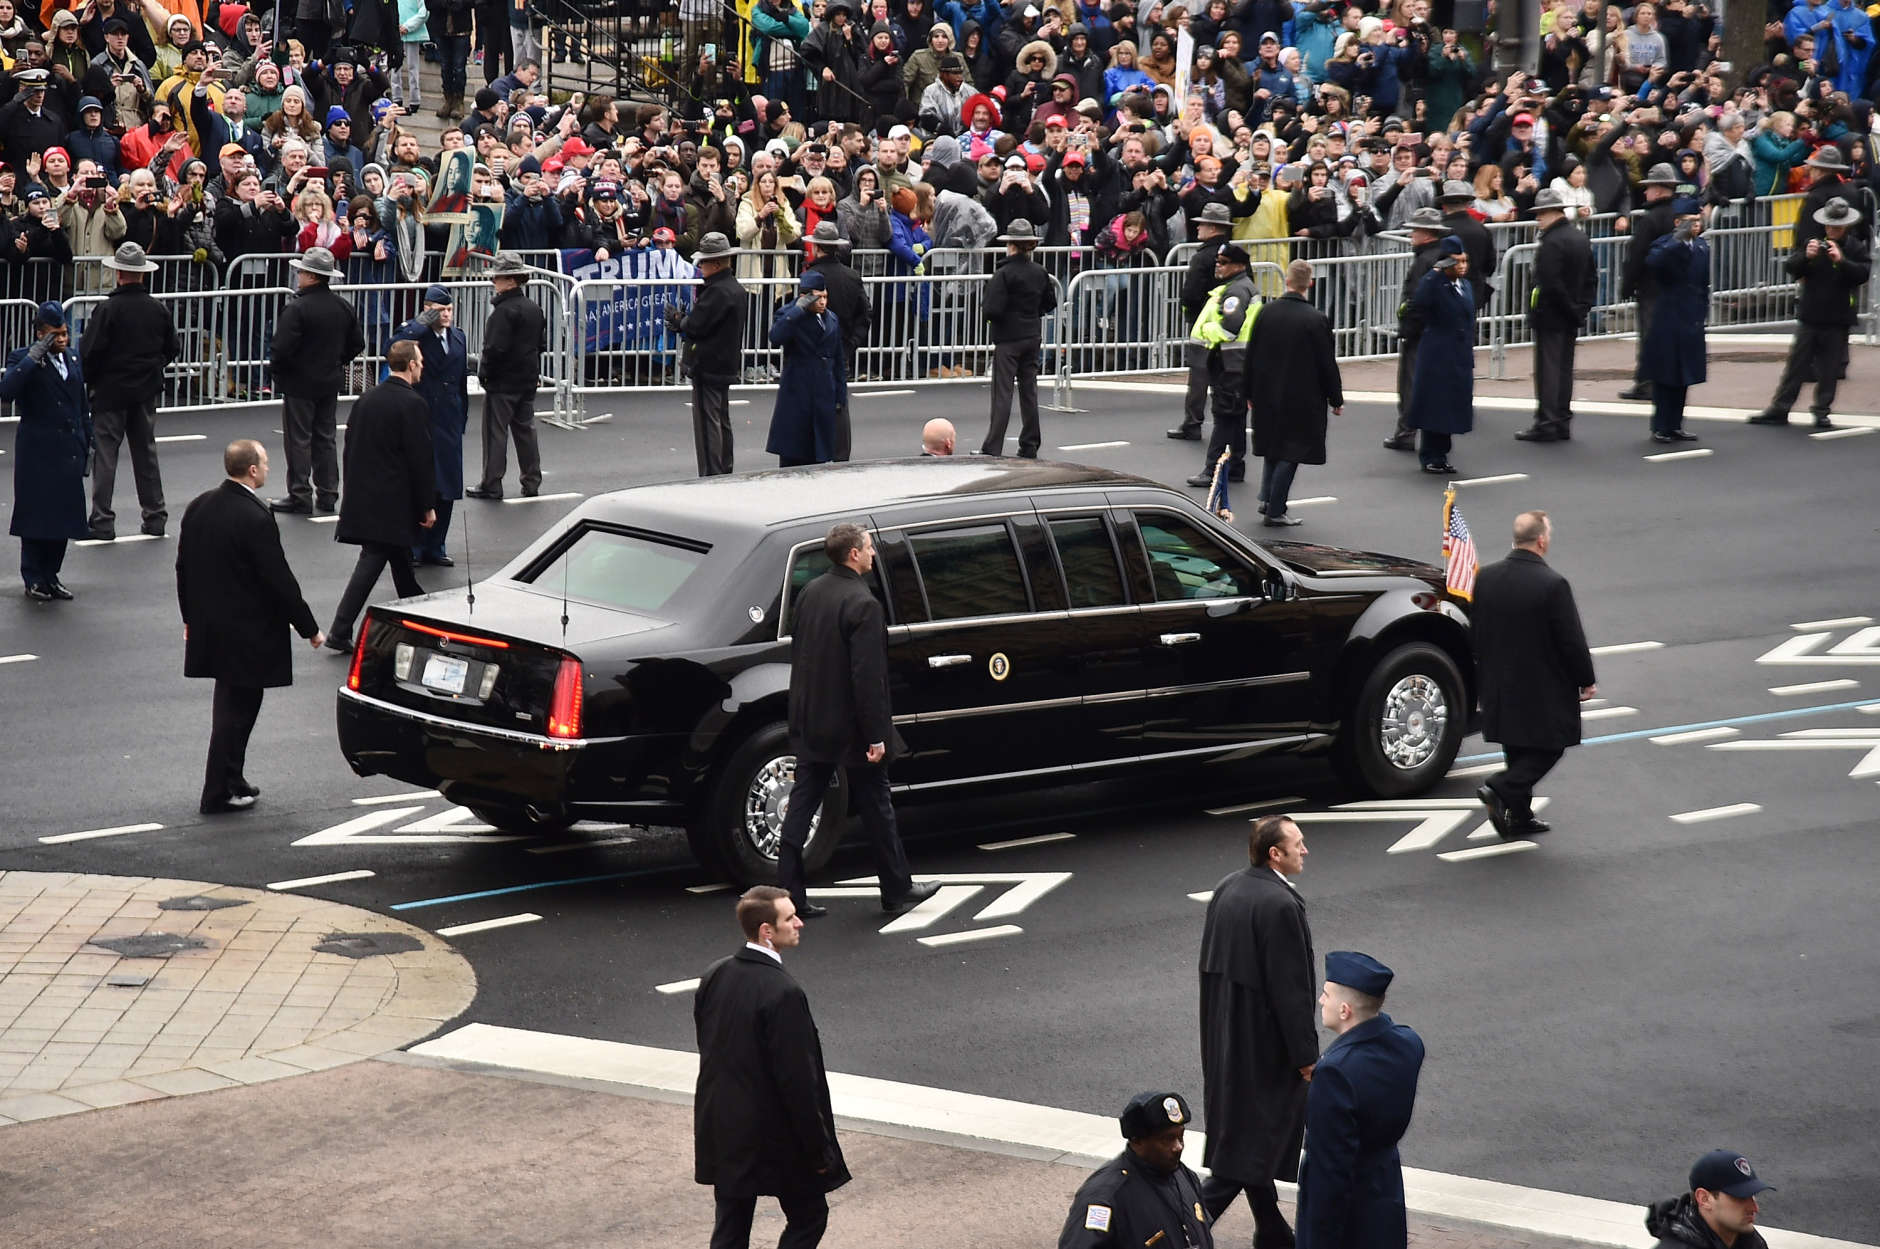 WASHINGTON, DC - JANUARY 20:  The presidential limousine carrying U.S. President Donald Trump and first lady Melania Trump turns onto Pennsylvania Avenue during the Presidential Inaugural Parade on January 20, 2017 in Washington, DC.  (Photo by Mike Coppola/Getty Images)